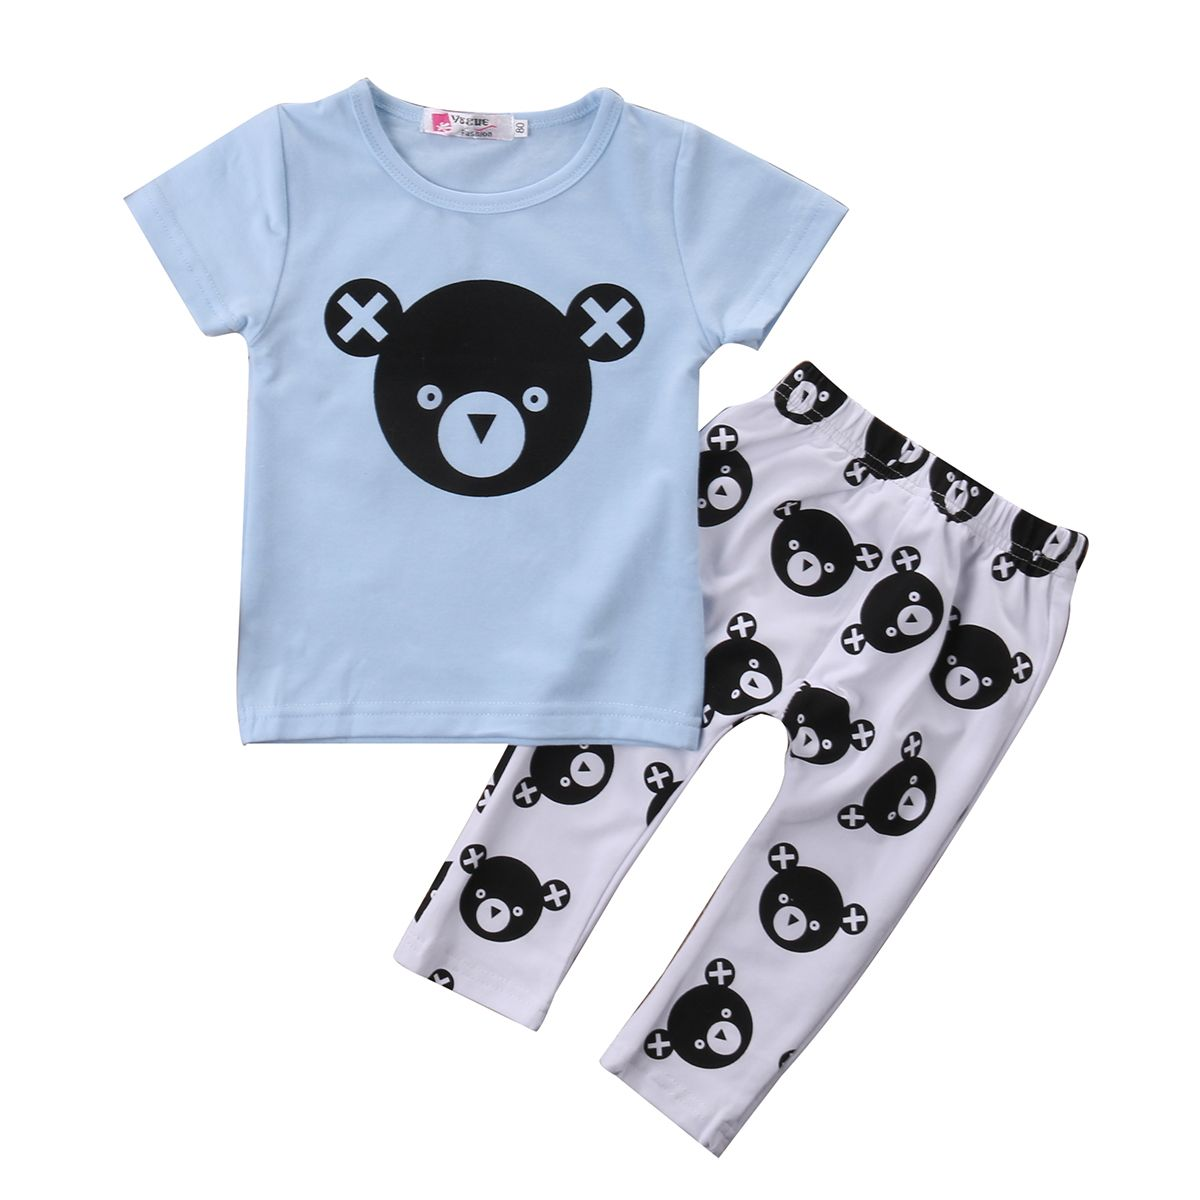 Click To Buy 2pcs Kids Clothes 2017 New Casual Short Sleeve Bear T Shirt Tops Pant Outfit Boys Clothing Set Chi Boy Outfits Bear Outfits Baby Boy Outfits